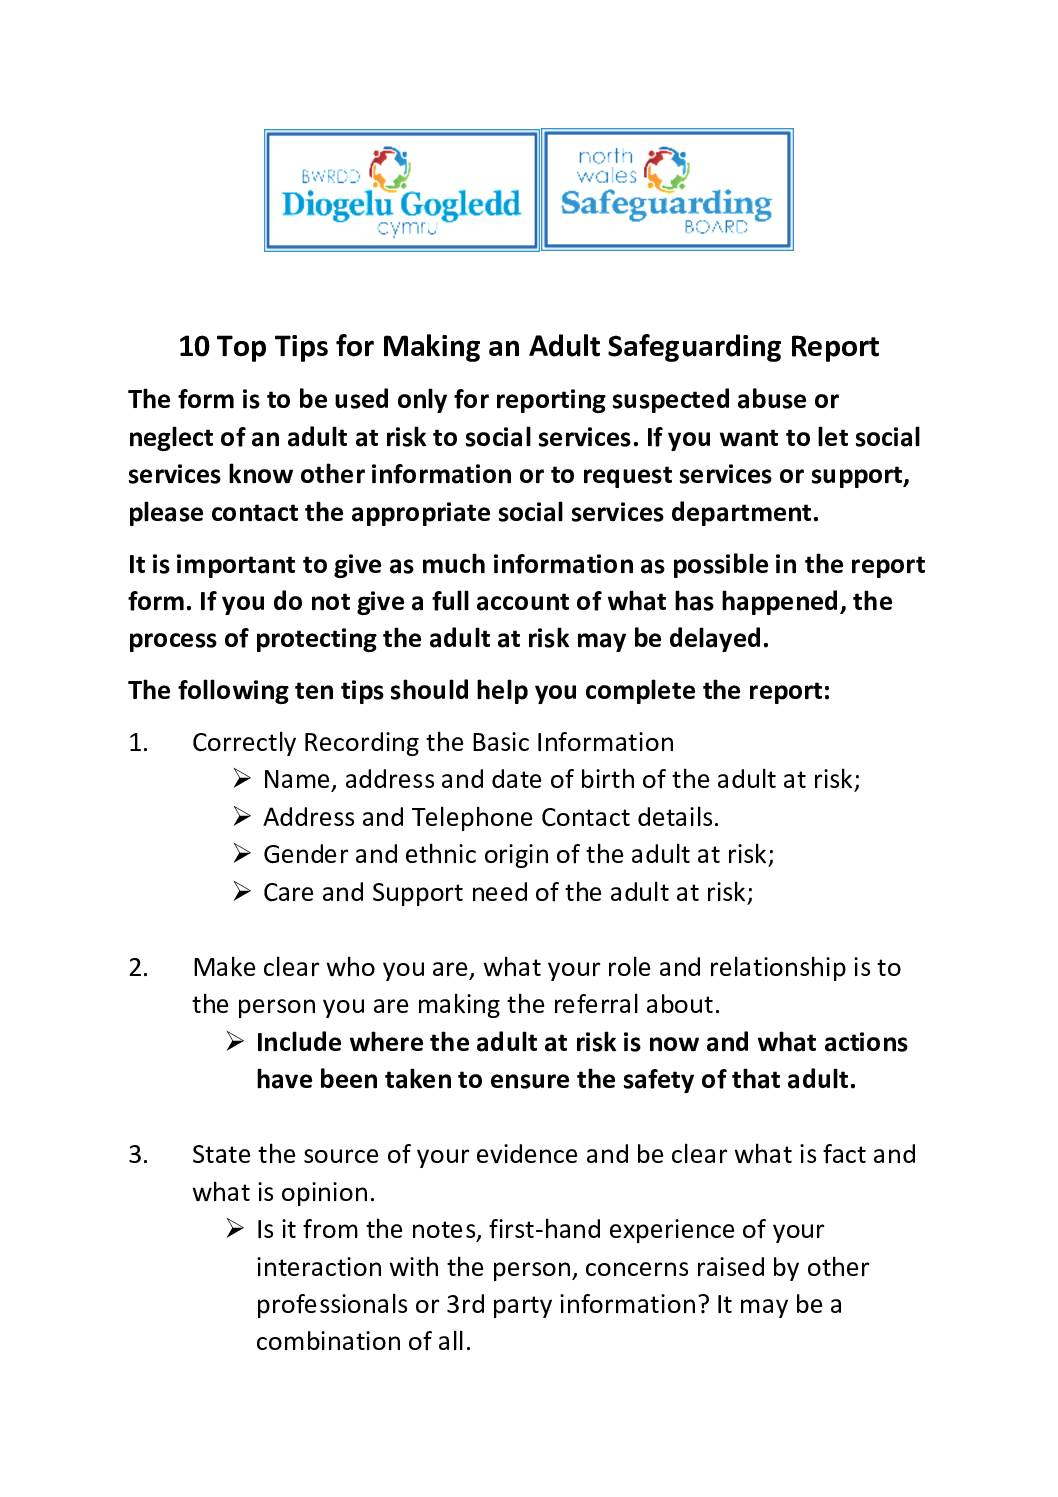 10 Top Tips for Making an Adult Safeguarding Report